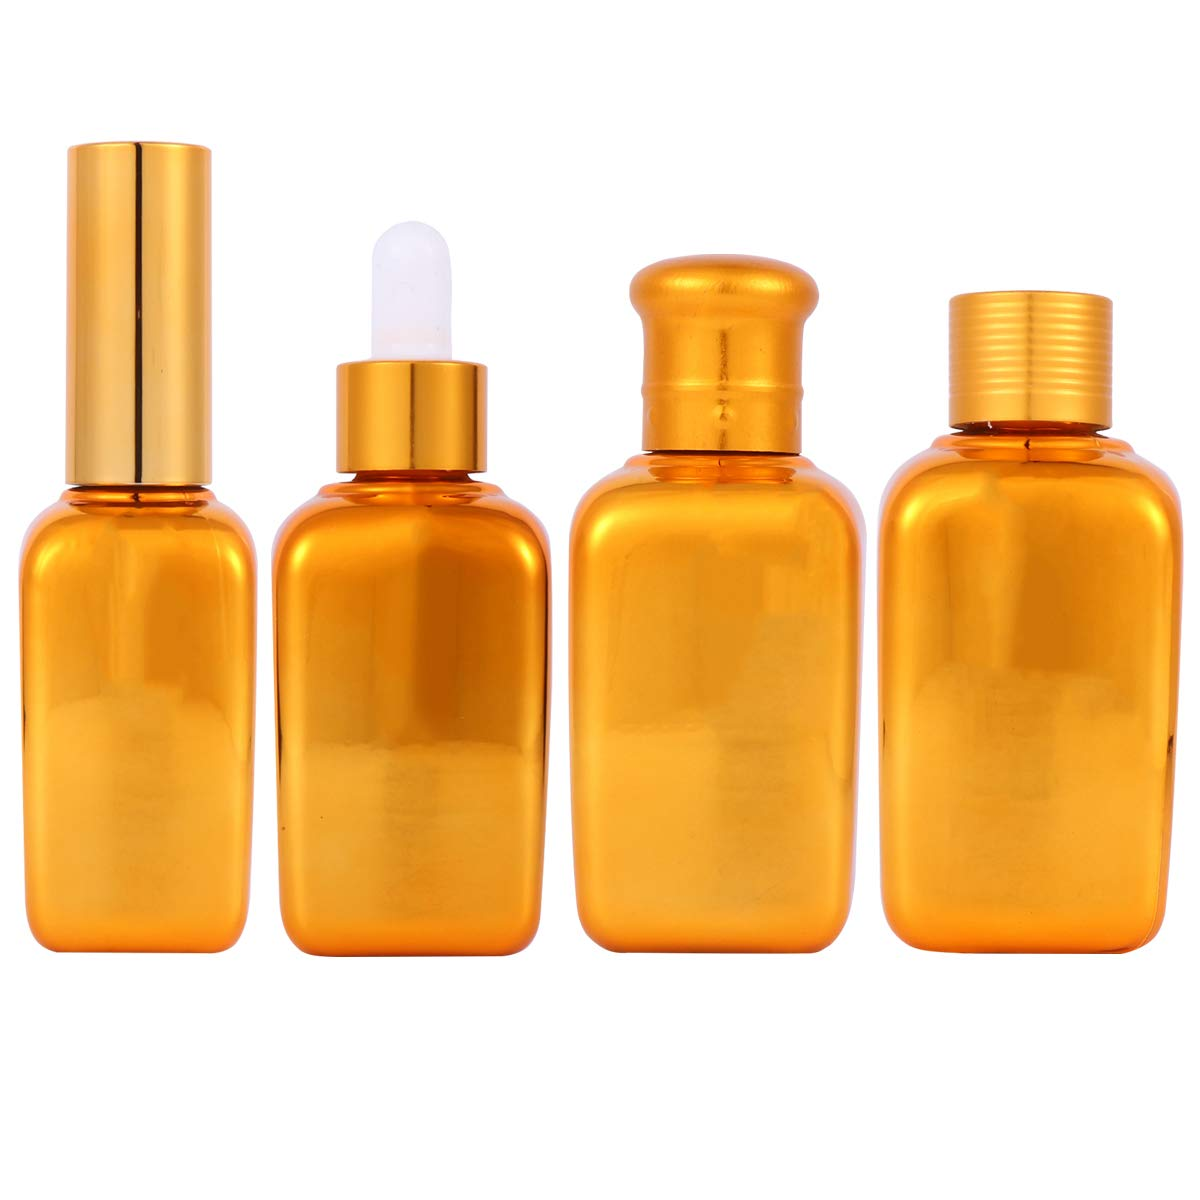 LEDMOMO All stores are sold 4pcs Golden Electroplated Glass Bot Las Vegas Mall Bottles Empty Lotion